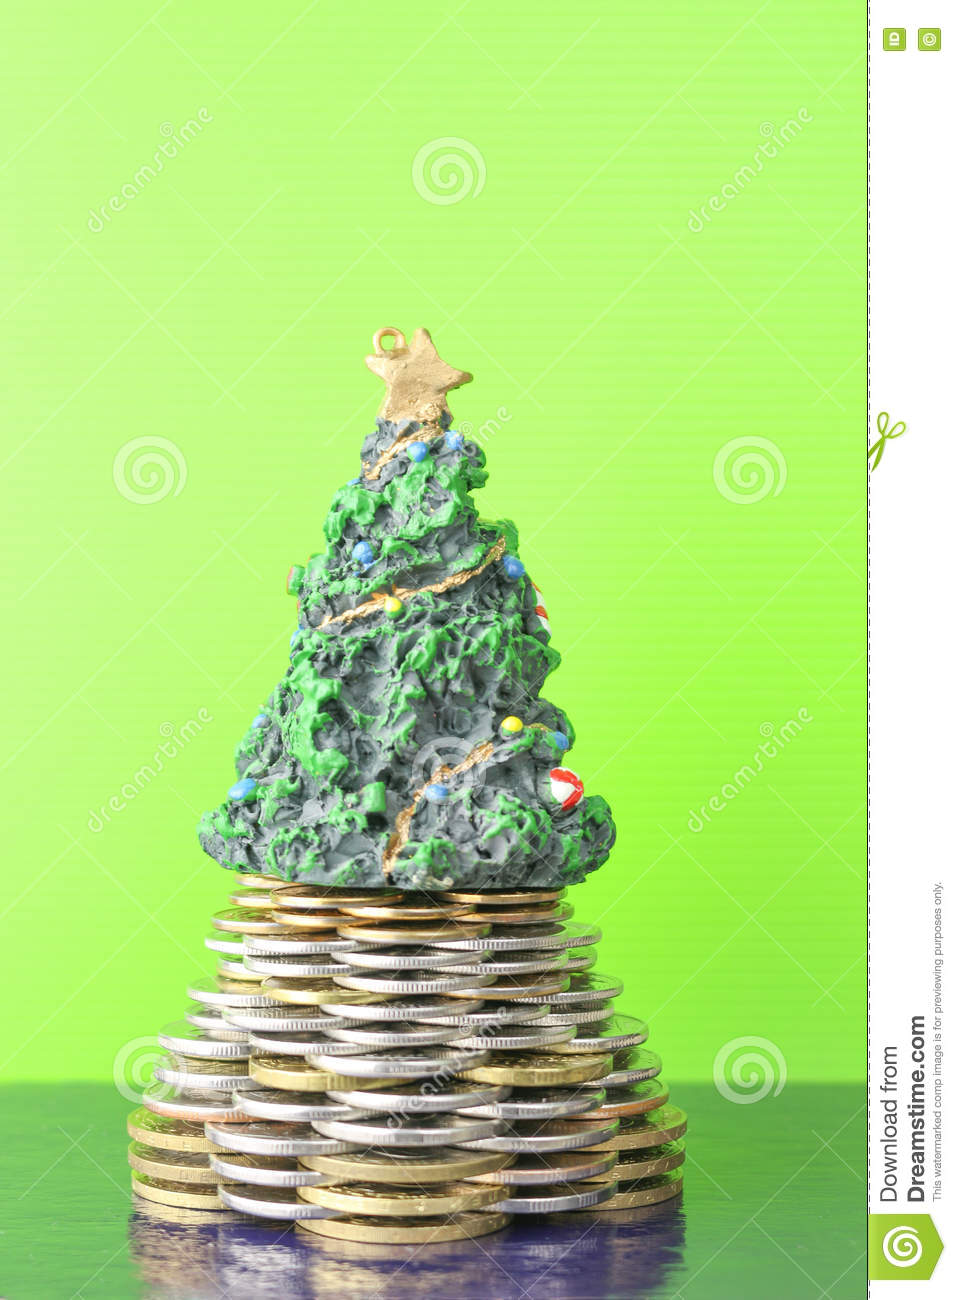 Pyramid christmas ornament - Coins Pyramid Christmas Tree The New Year Holiday Business Growth Concept Finance